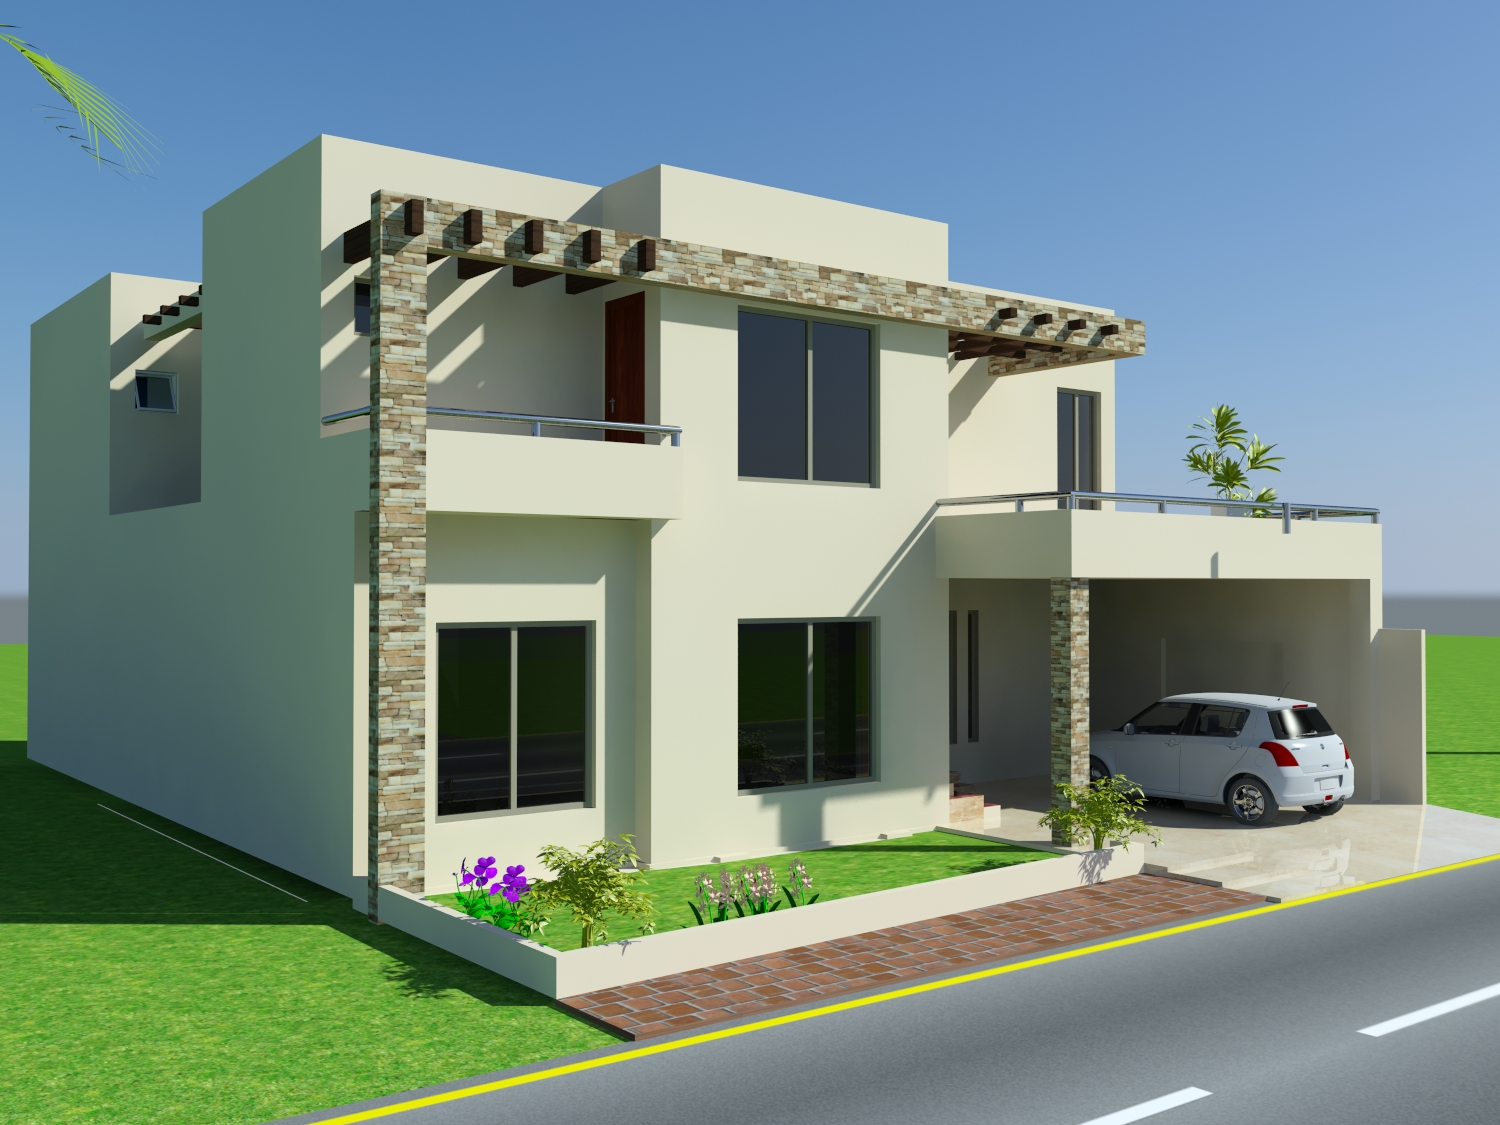 3d front 10 marla house design mian wali for Home design front side